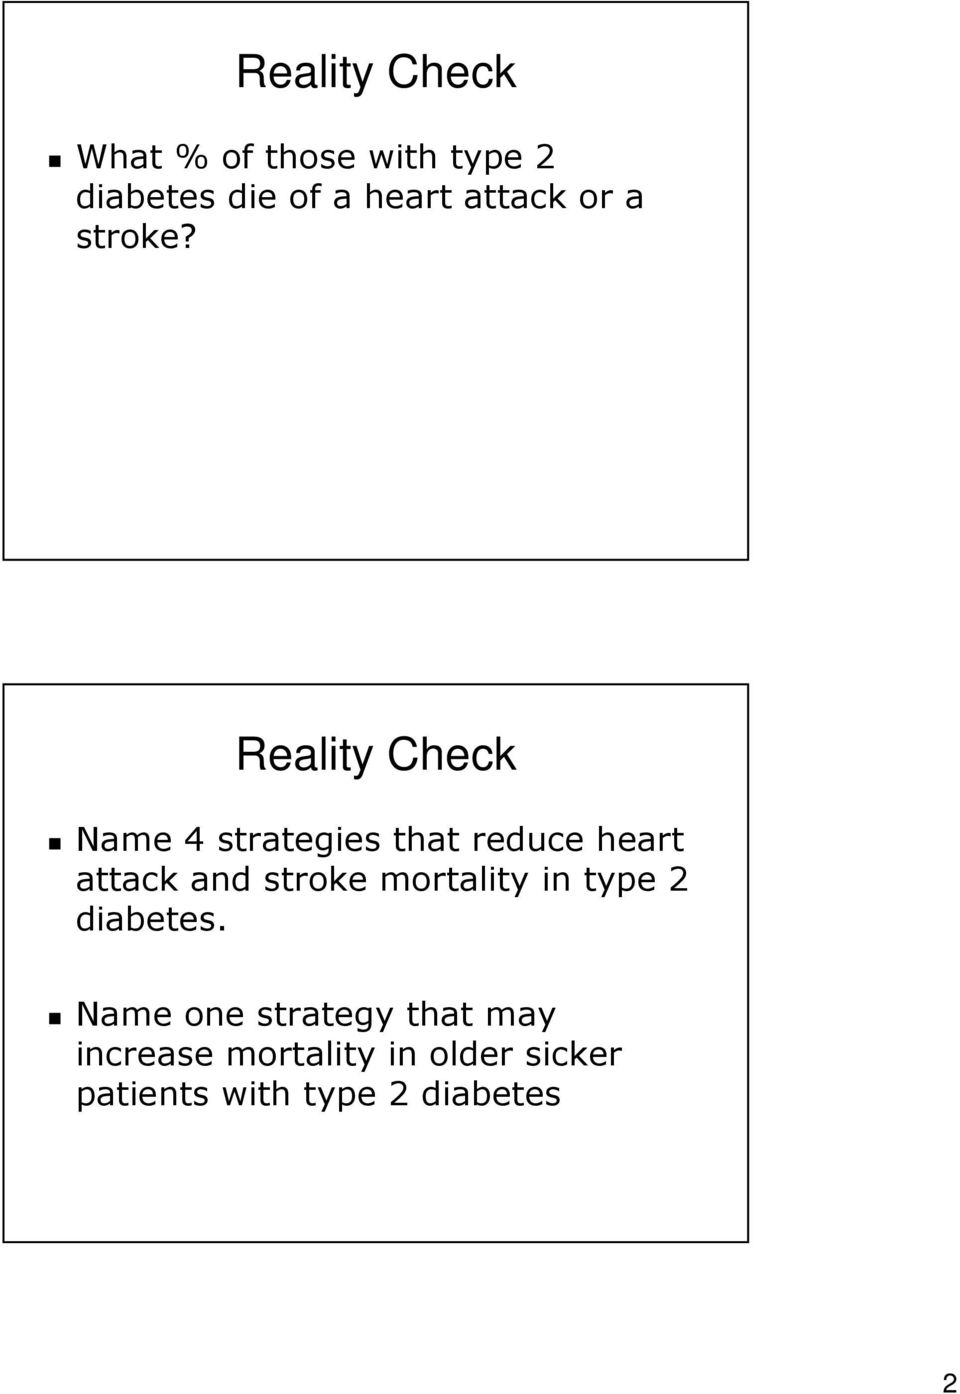 Reality Check Name 4 strategies that reduce heart attack and stroke